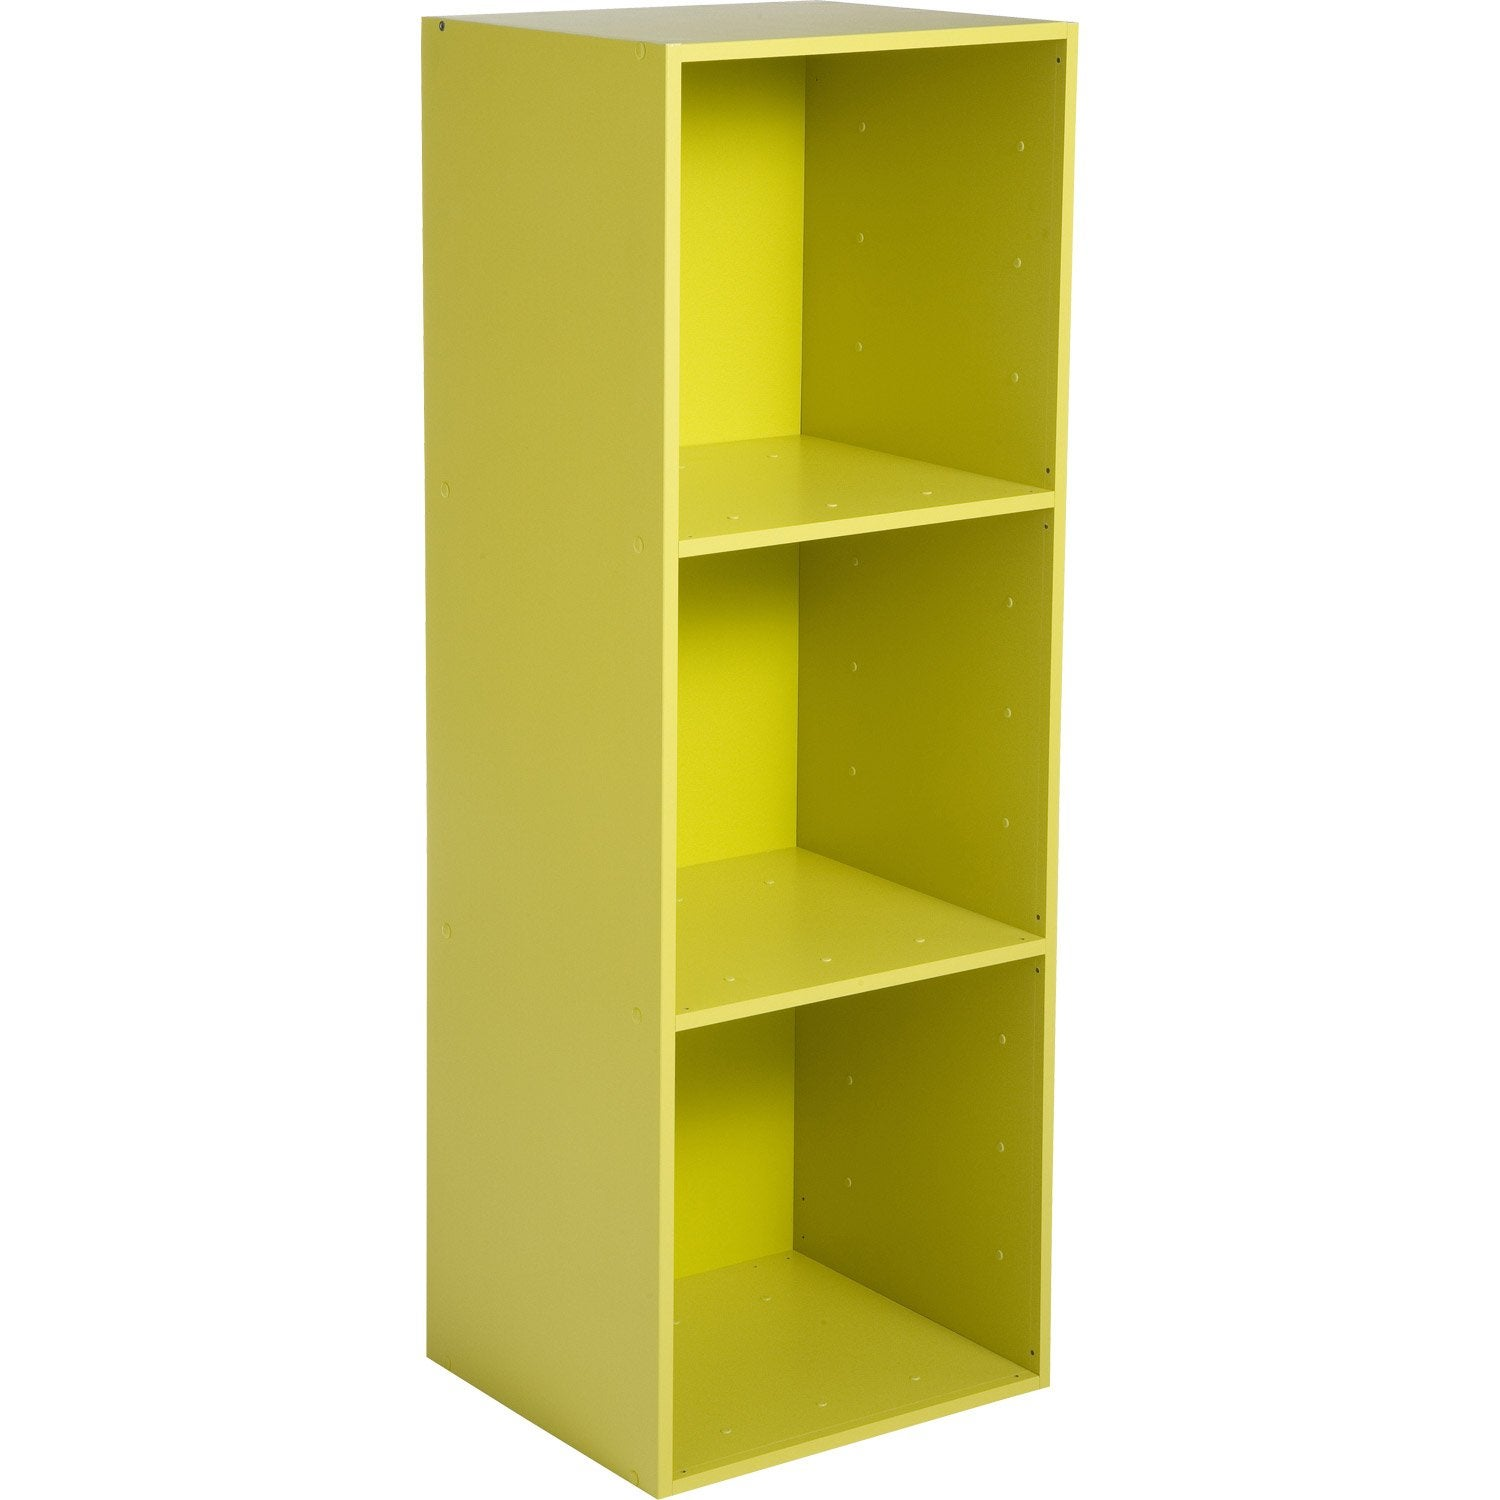 Etag re 3 cases multikaz vert l35 2 x h103 2 x p31 7 cm - Etagere sur mesure leroy merlin ...